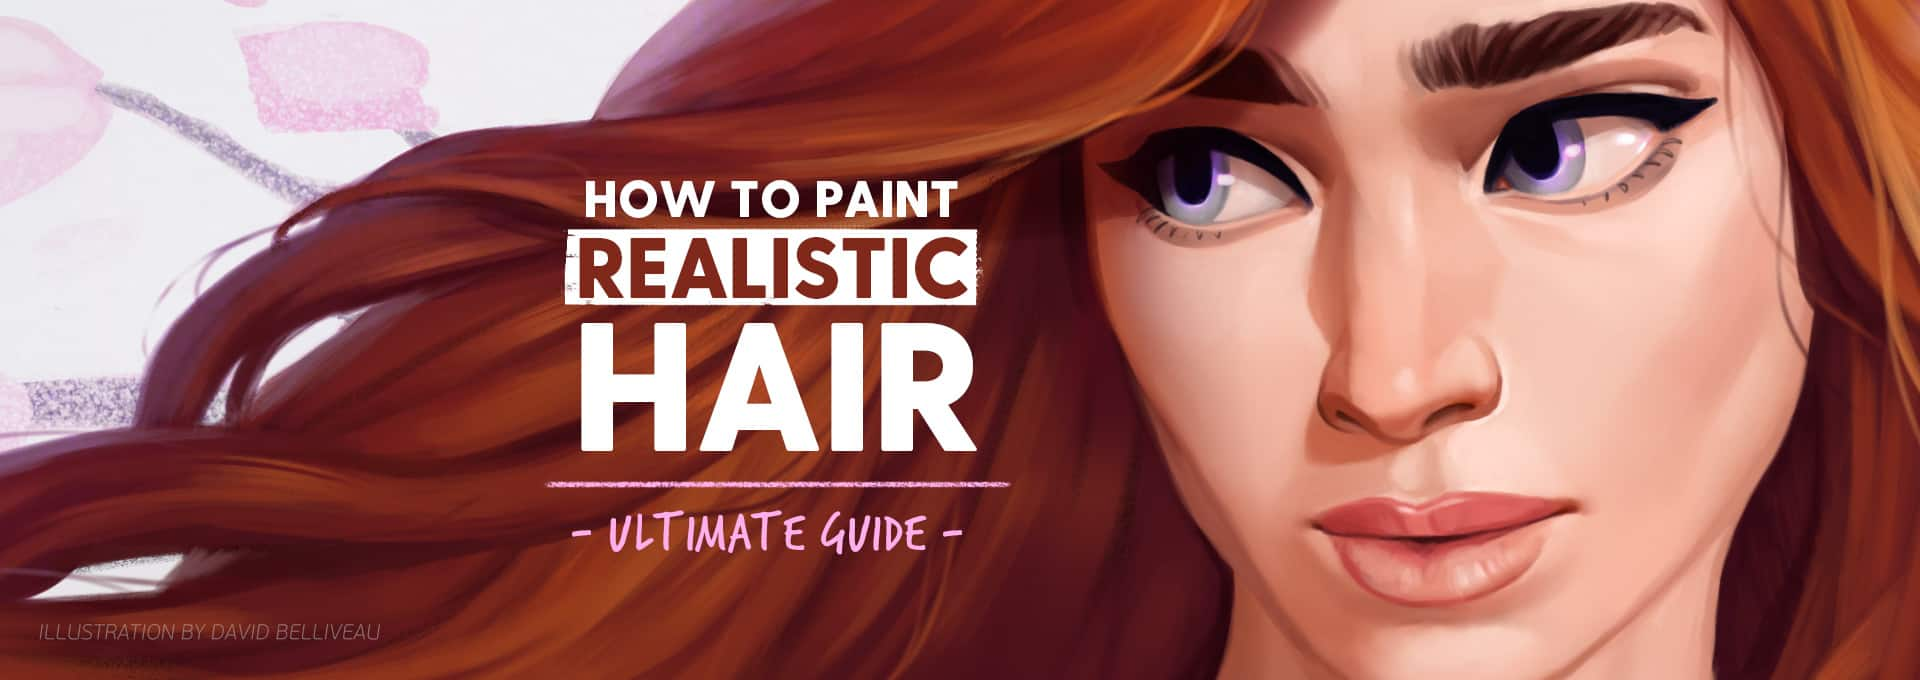 Painting Realistic Hairstyles The Ultimate Guide Paintable